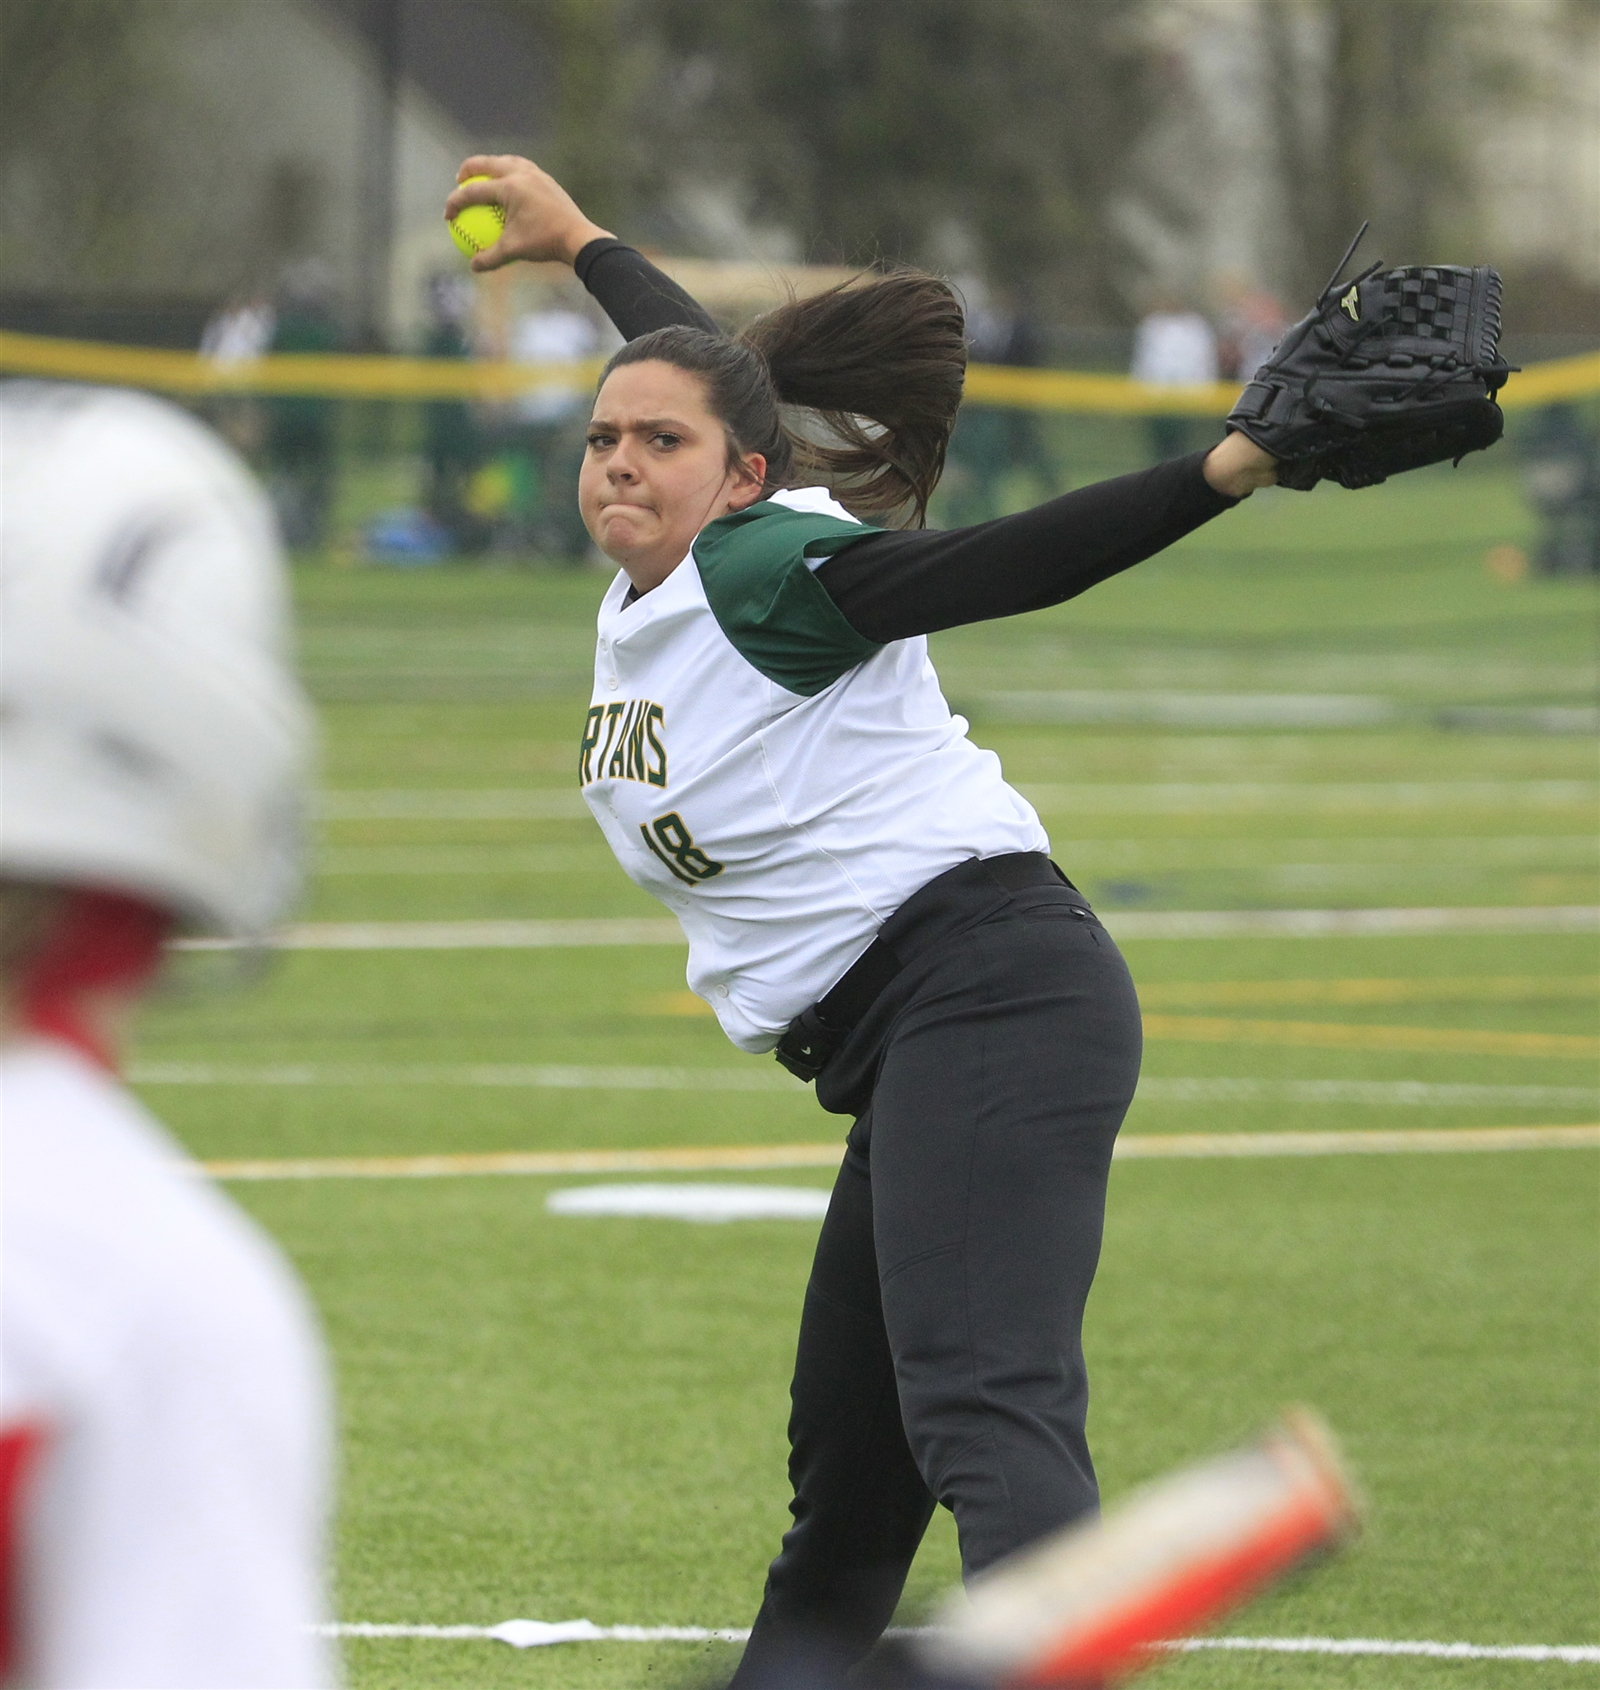 Williamsville Northu2019s Emily Nicosia pitches to Jamestown at Williamsville North High School on Saturday, May 6, 2017.